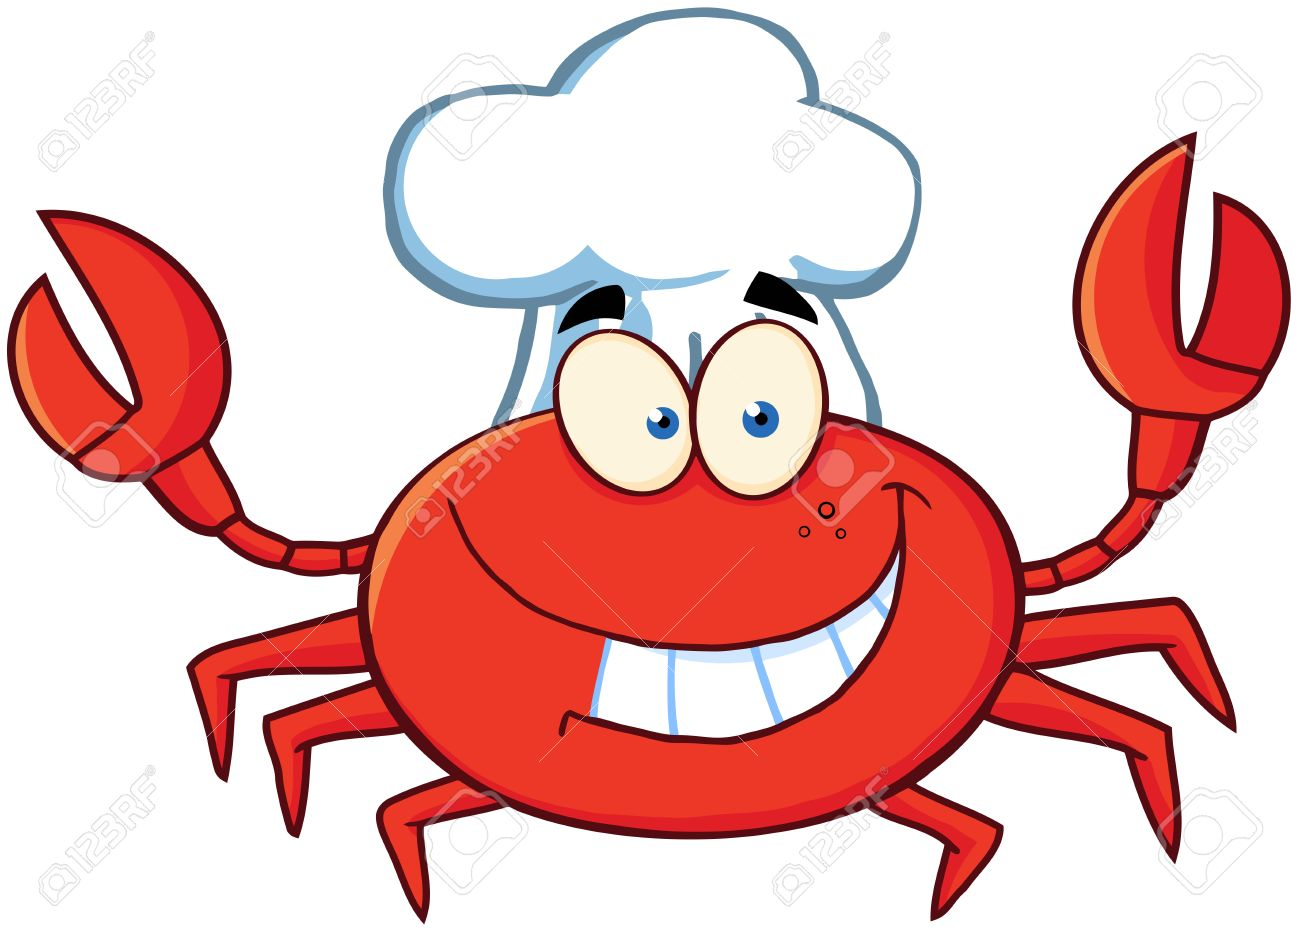 1300x931 Lobster Crab Clipart, Explore Pictures